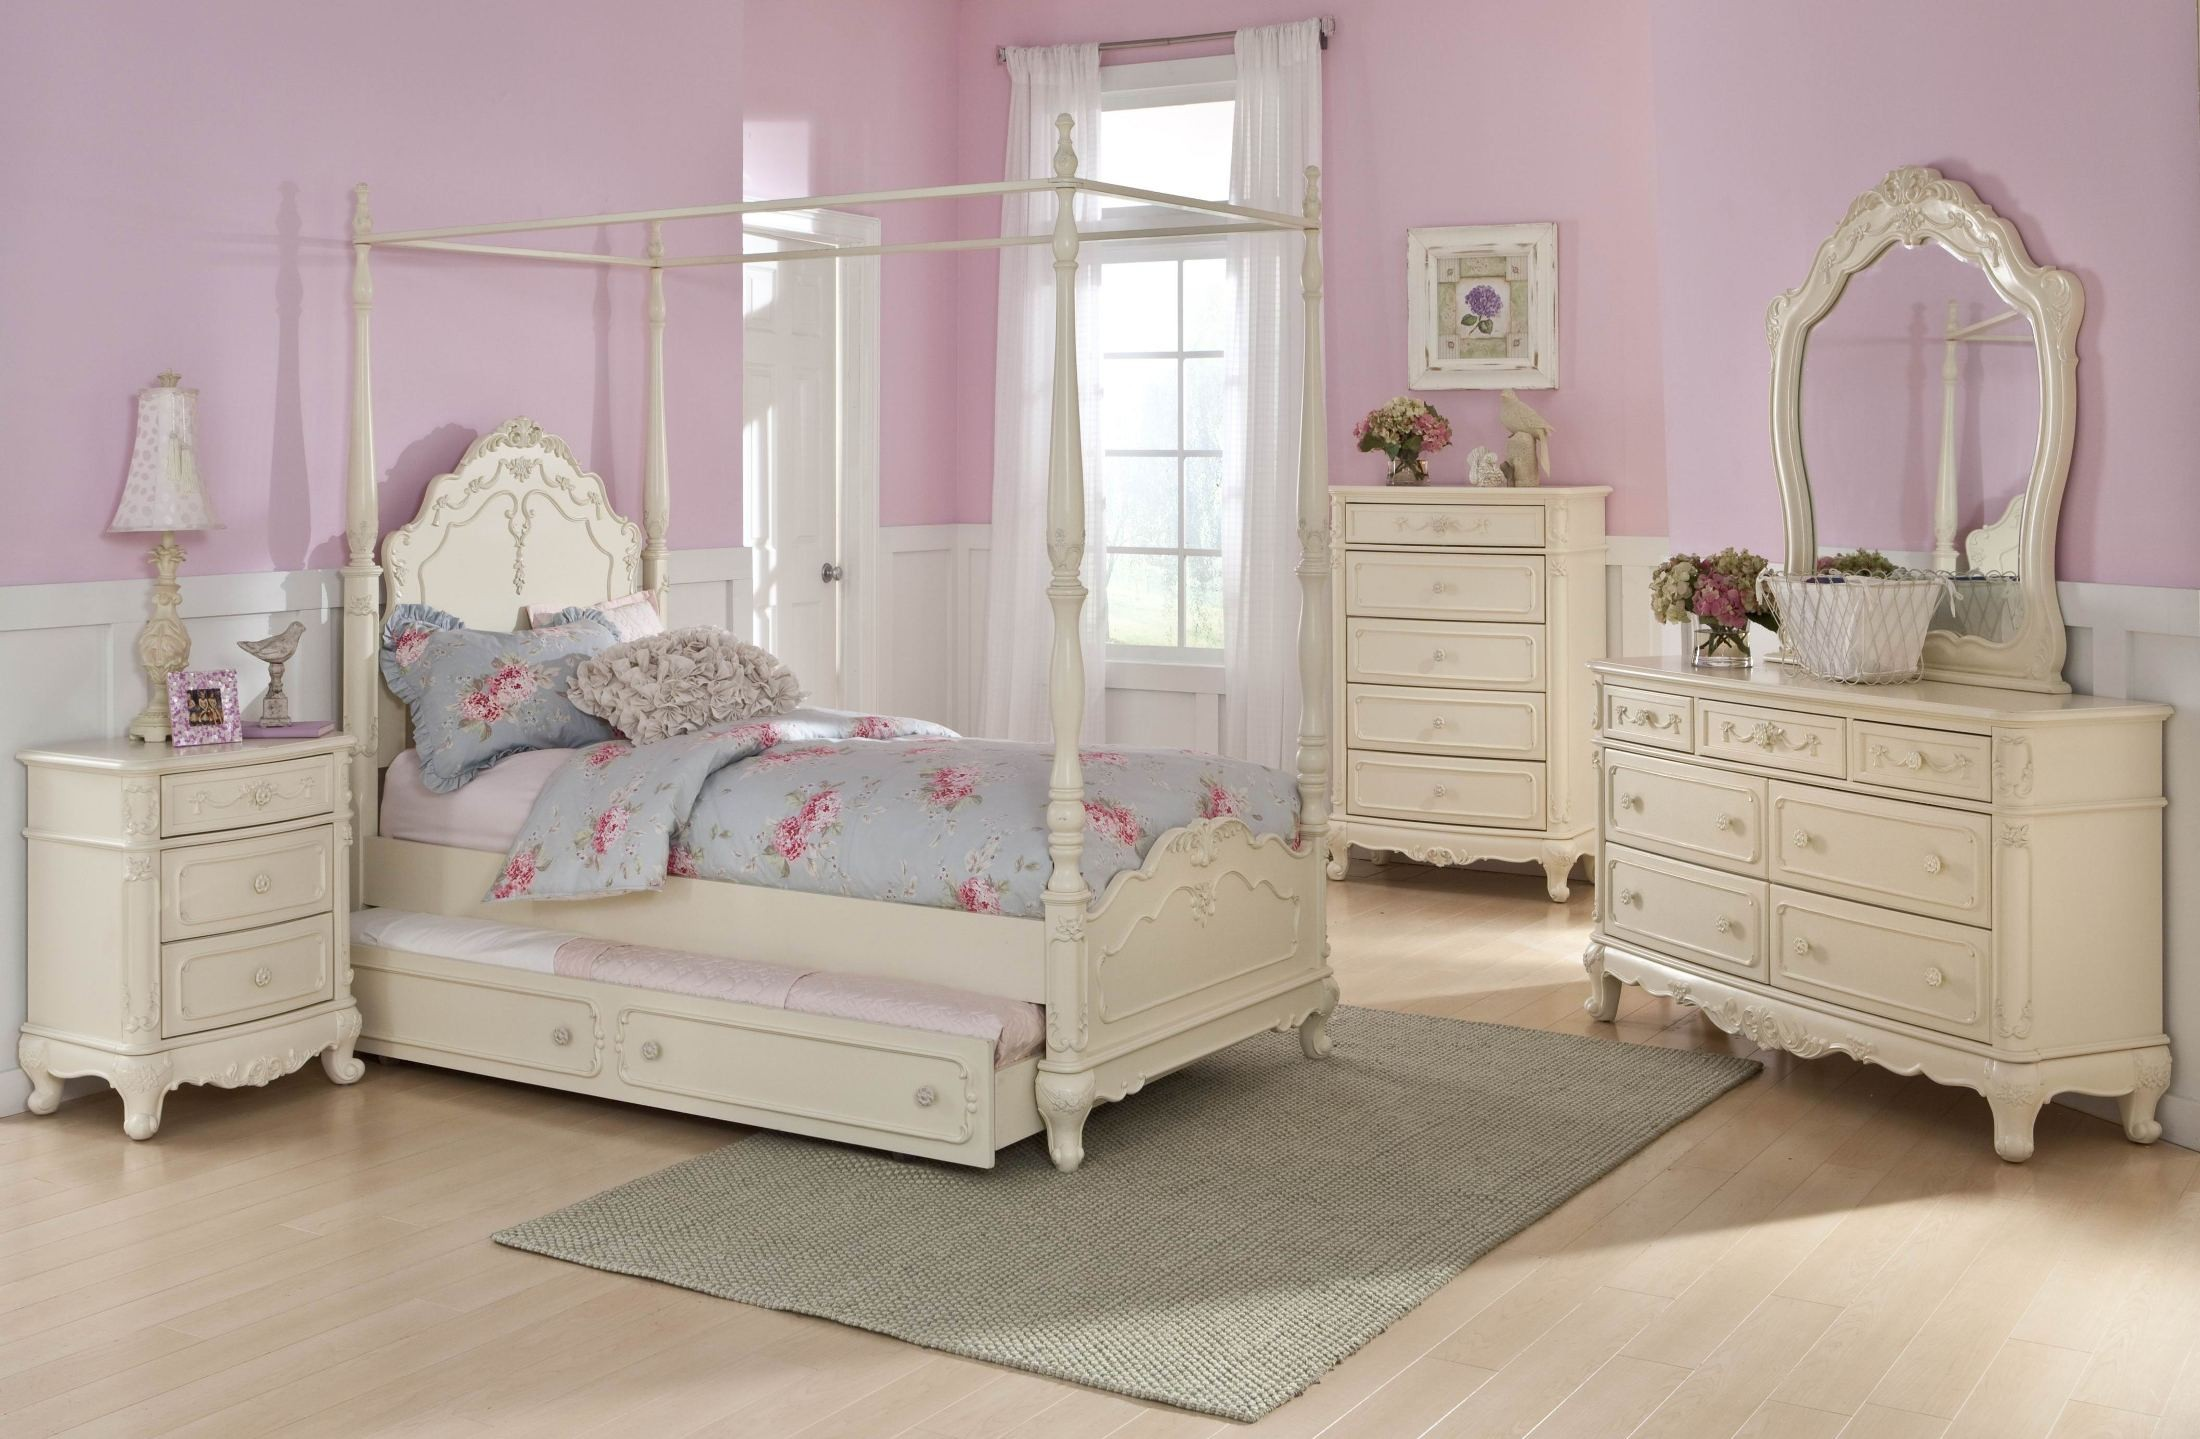 Attrayant Cinderella Youth Canopy Poster Bedroom Set From Homelegance (1386) |  Coleman Furniture